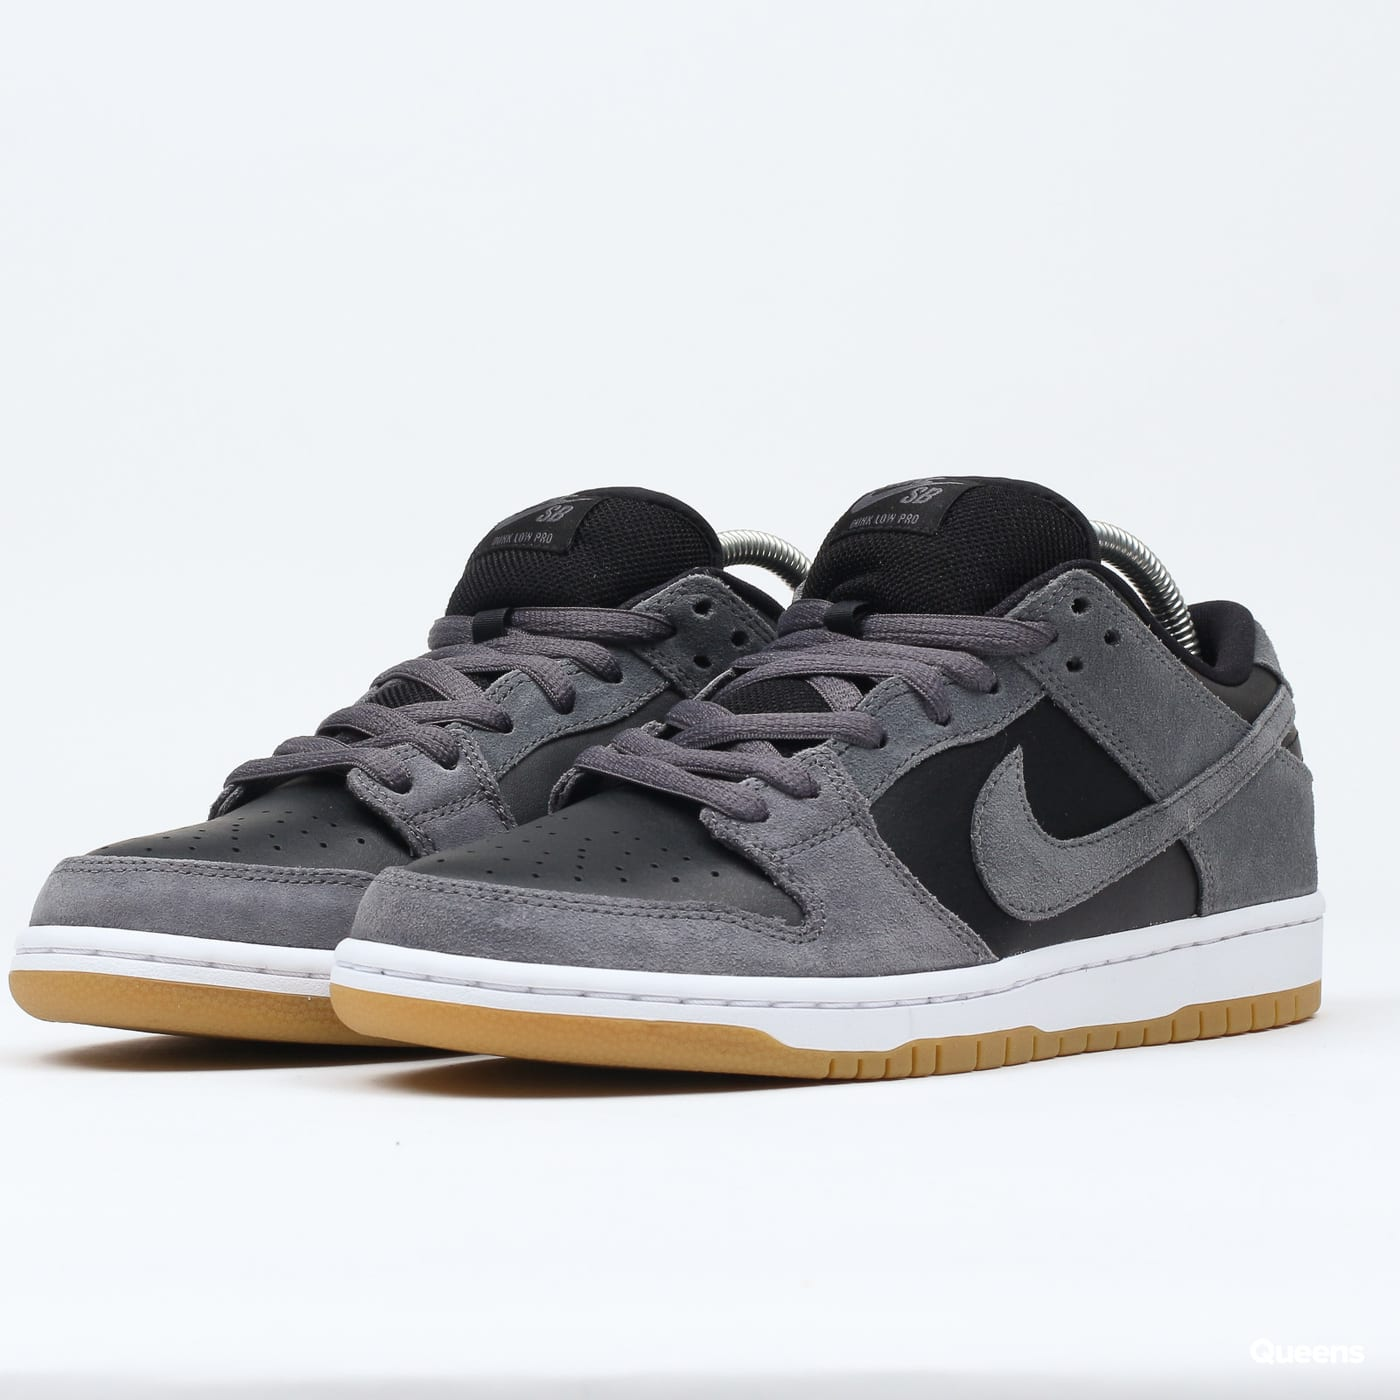 check out a6635 14ff0 Sneakers Nike SB Dunk Low TRD (AR0778-001)– Queens 💚